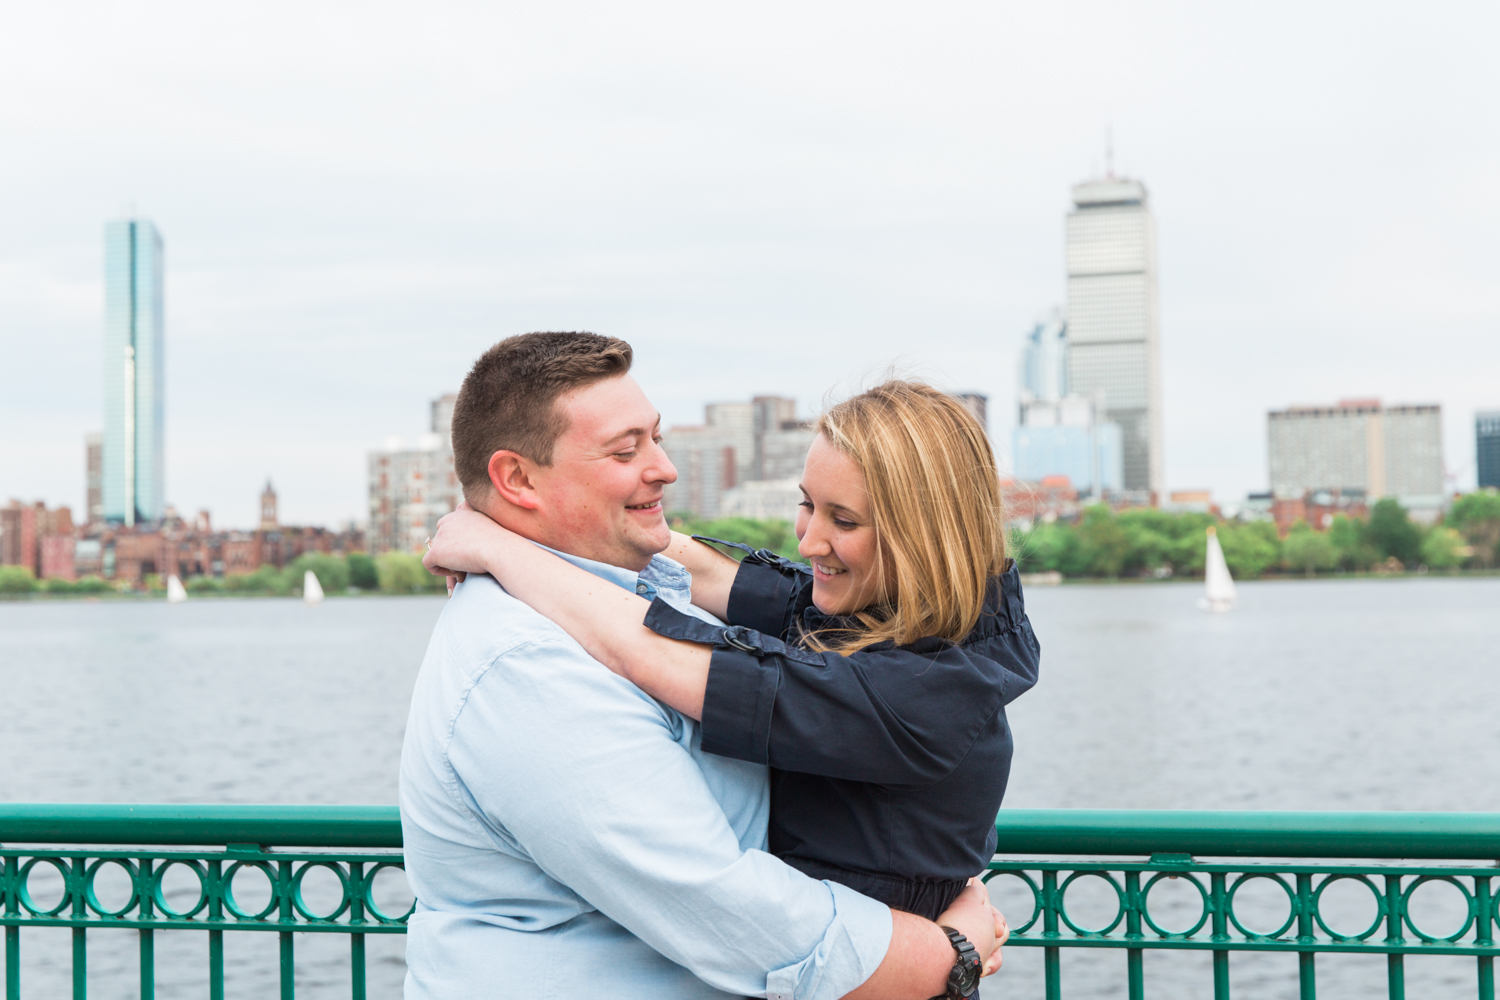 harvard-art-museum-engagement-photography-session-19